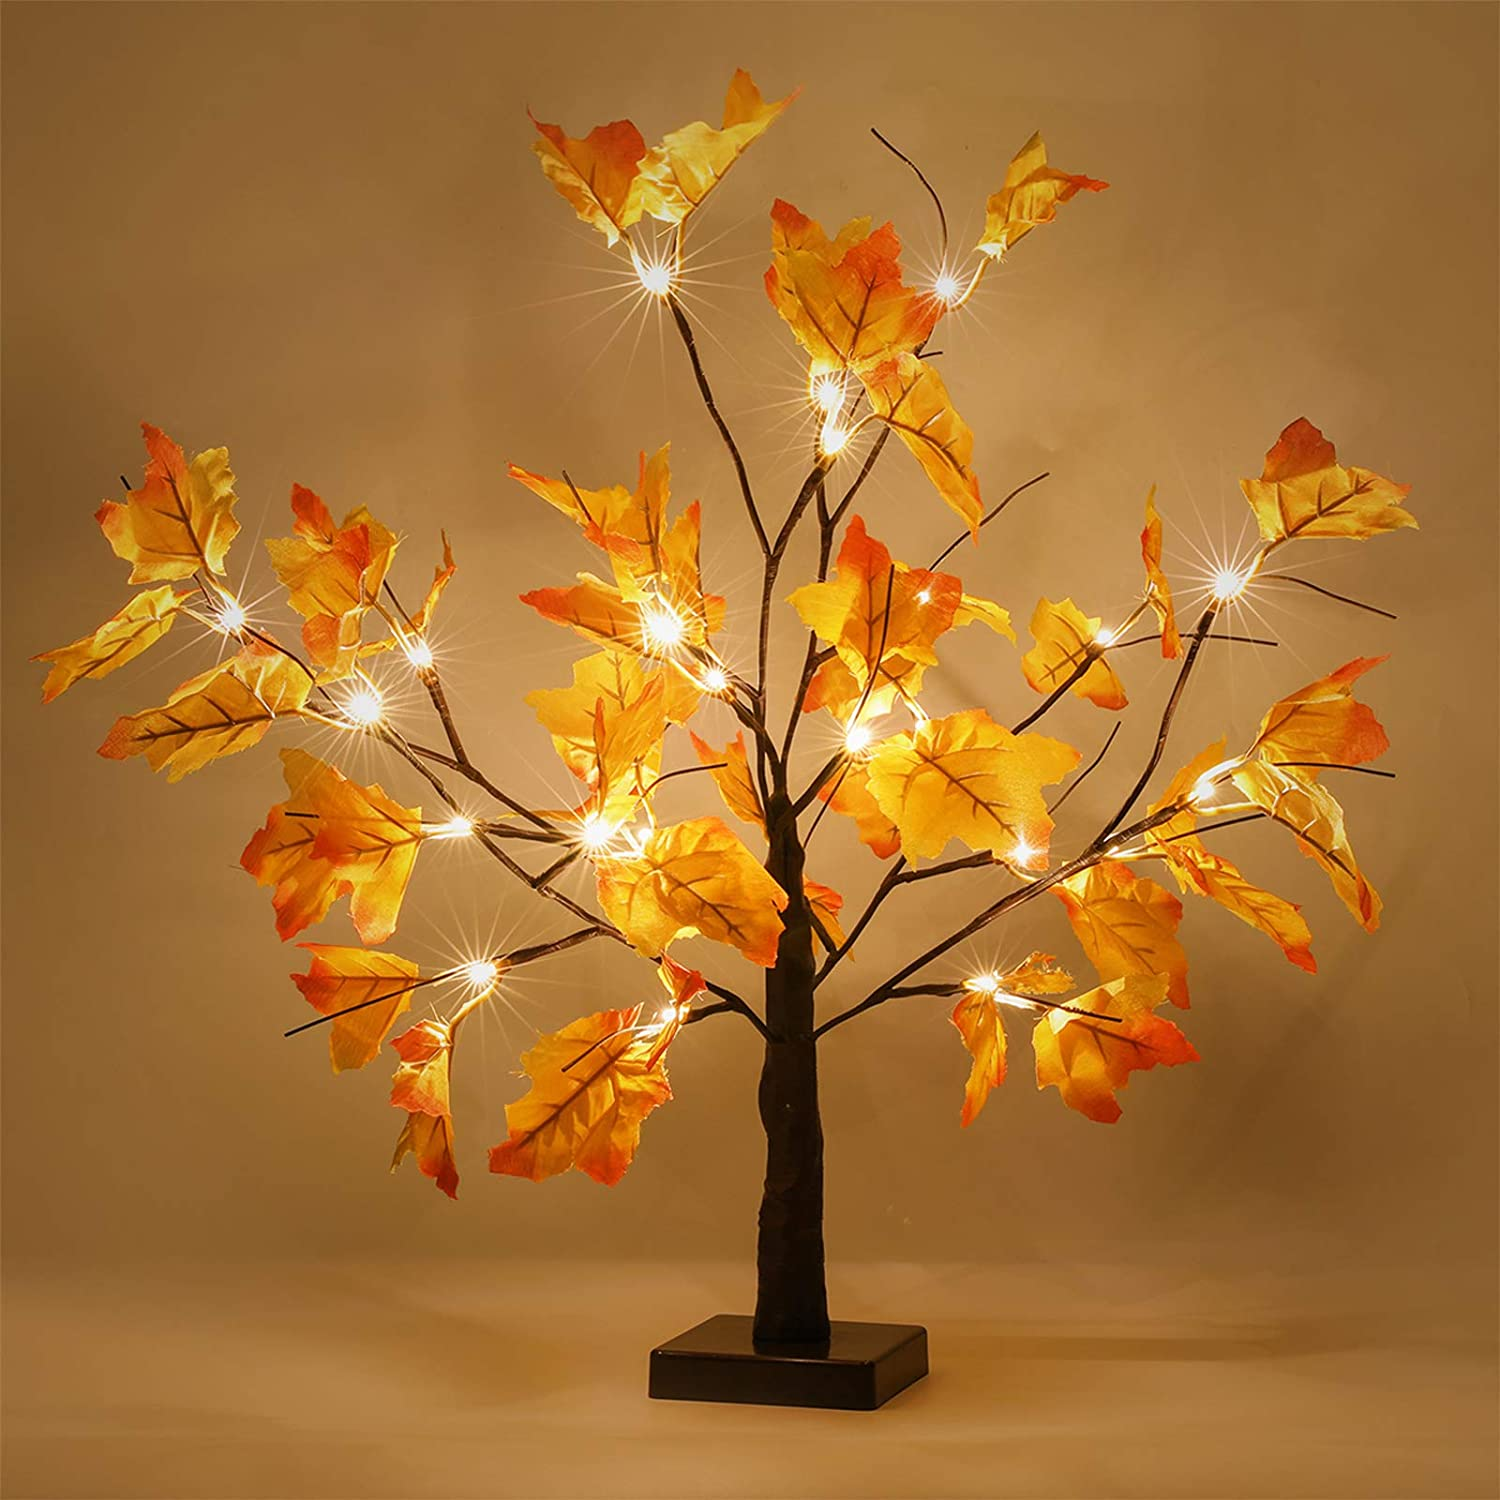 2 Pack Thanksgiving Decorations Table Lights Thanksgiving Maple Leaves Autumn Tree Decoration 24 24 Led Thanksgiving Gift Battery Powered Fall Decor For Home Indoor Fall Decorations Walmart Com Walmart Com